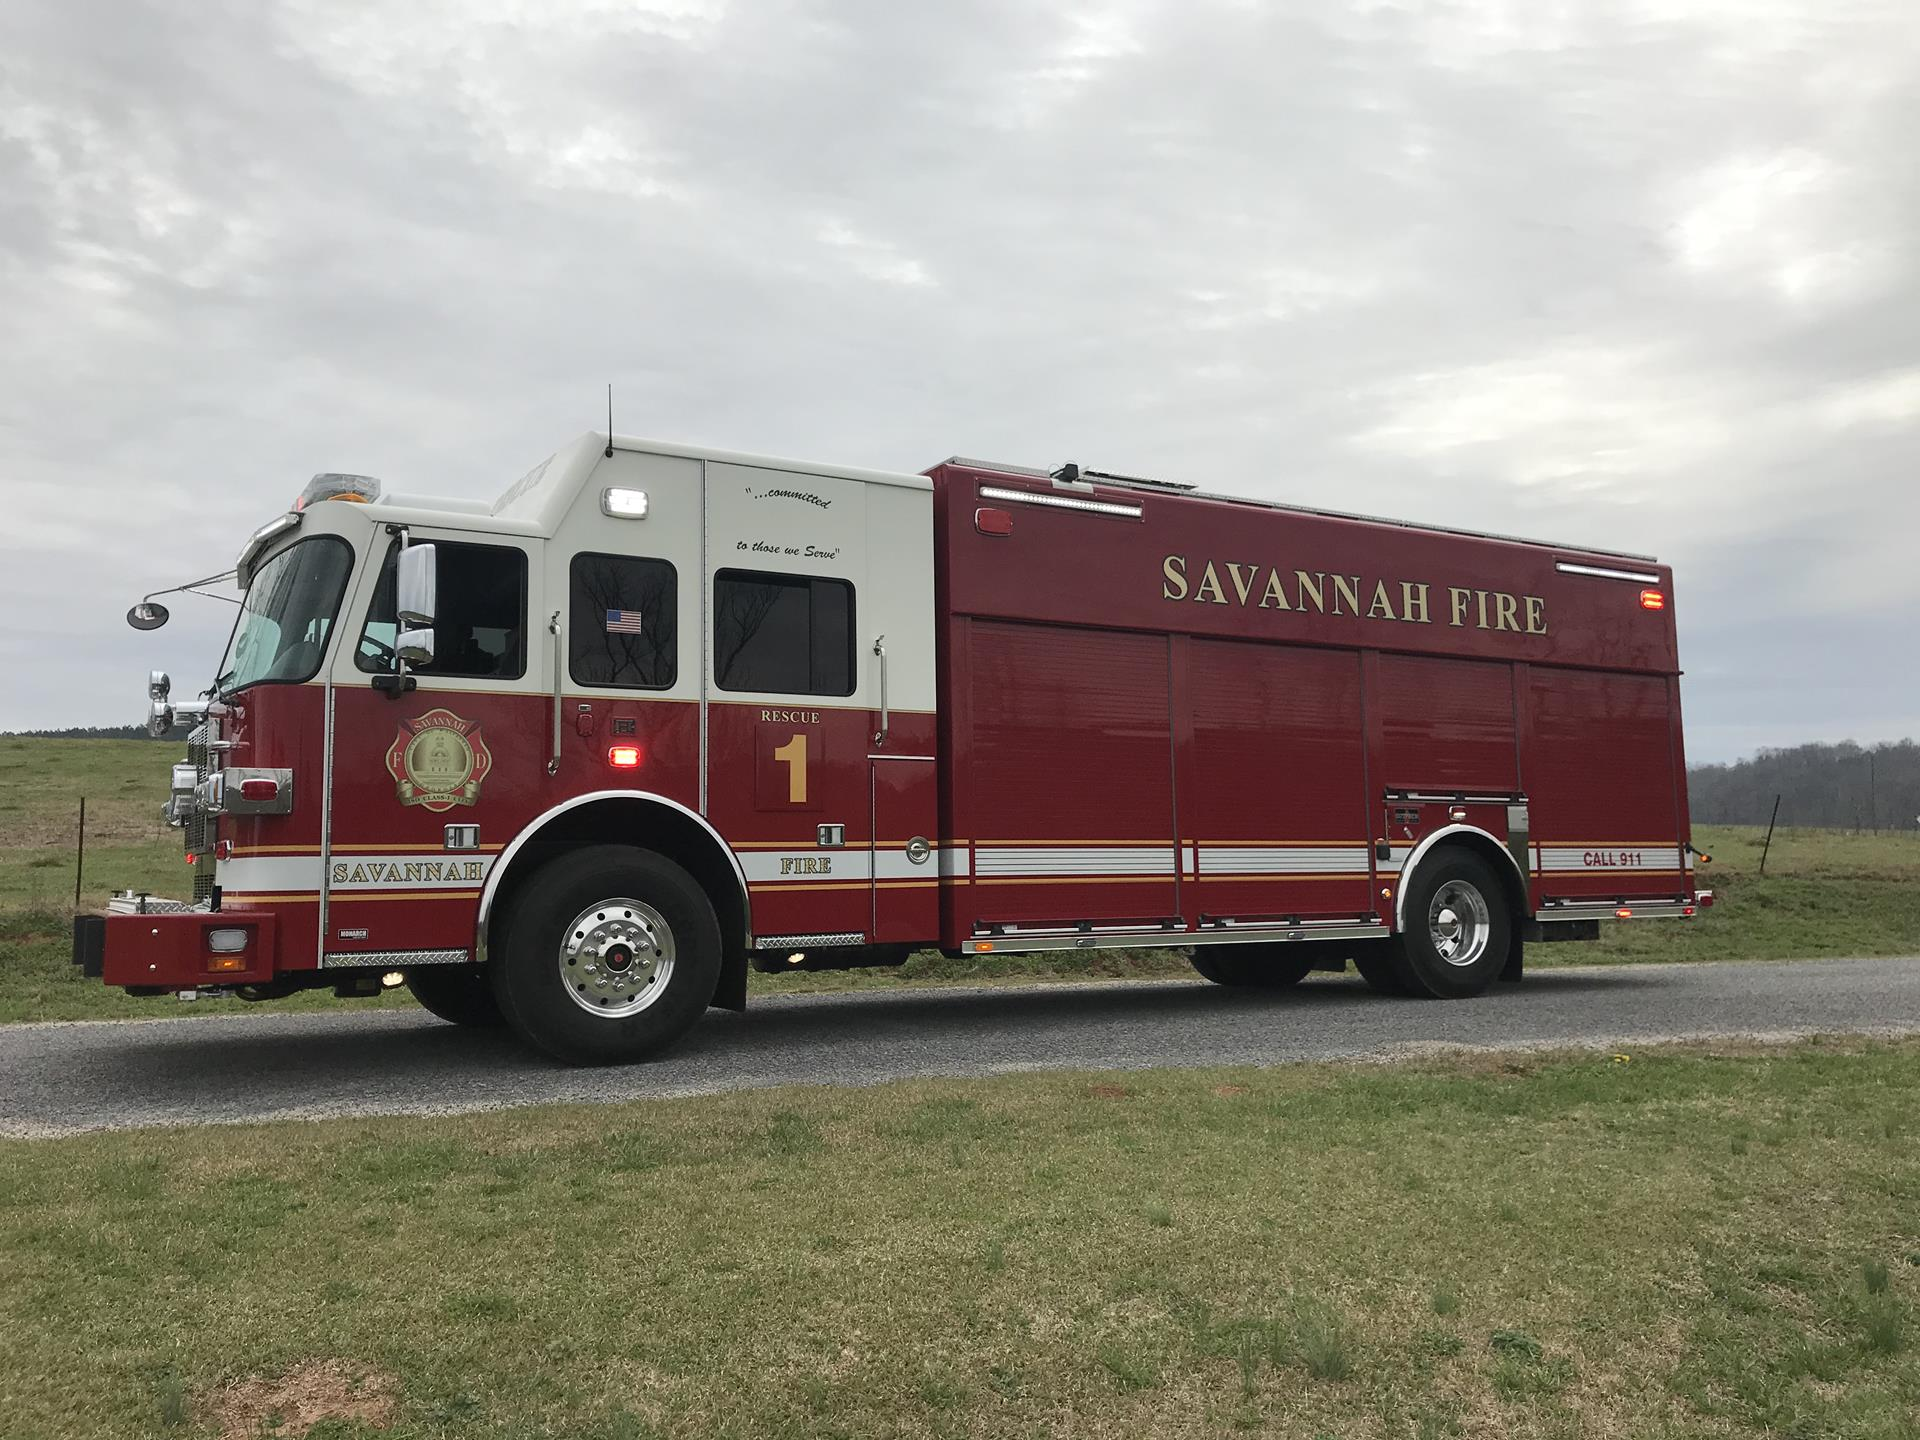 Savannah Fire Department, GA